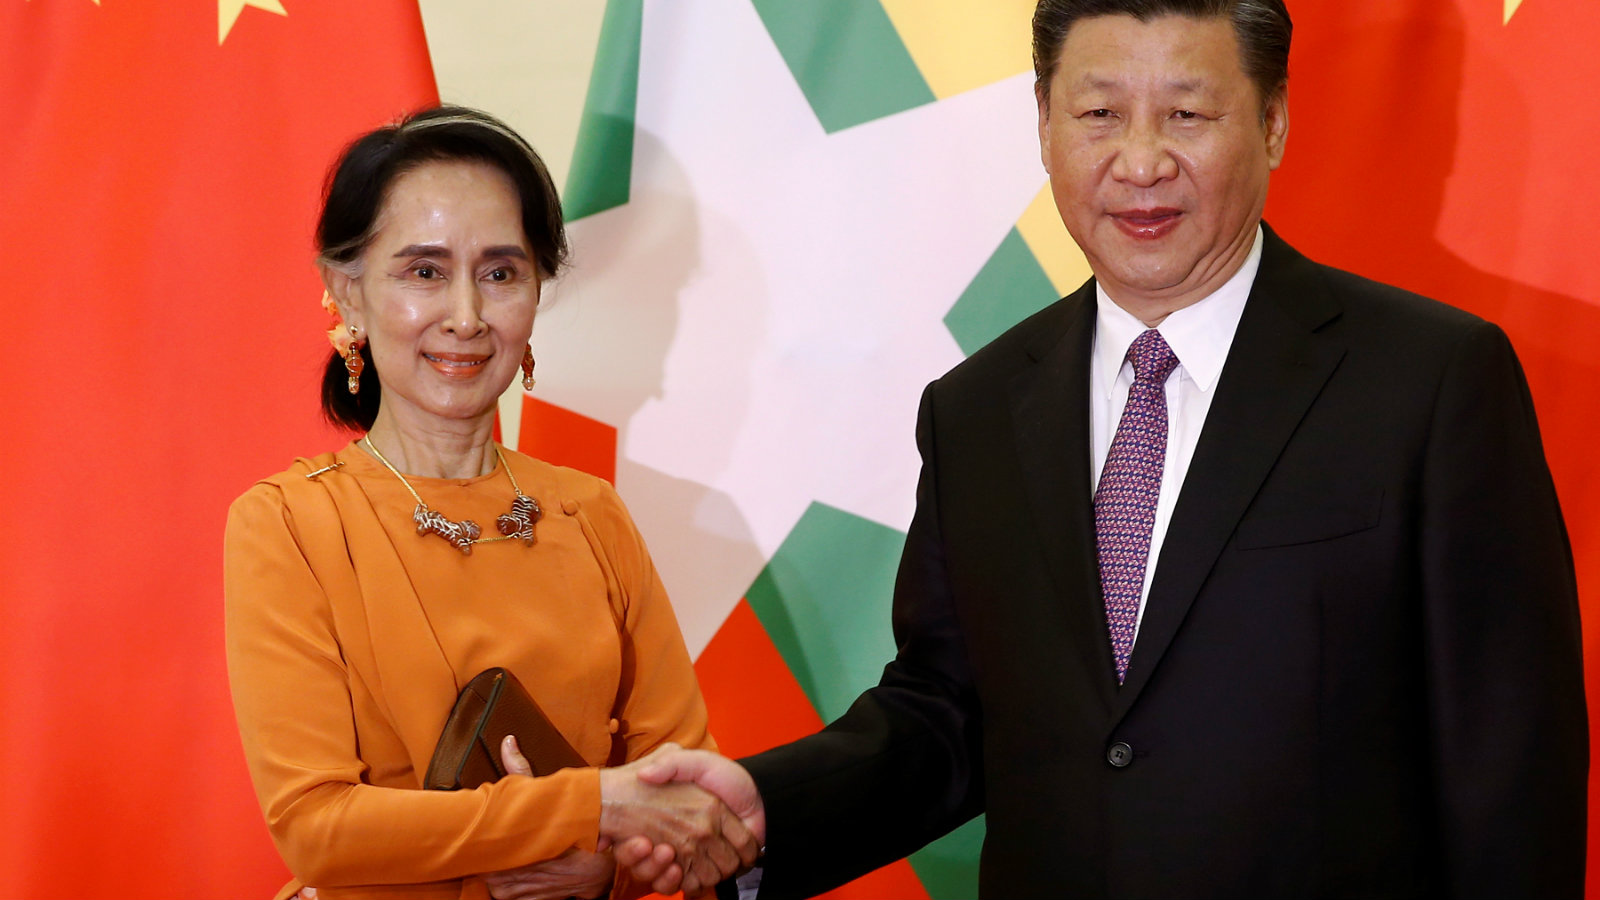 Myanmar State Counsellor Aung San Suu Kyi shakes hands with Chinese President Xi Jinping as they meet at the Great Hall of the People in Beijing, China, May 16, 2017.